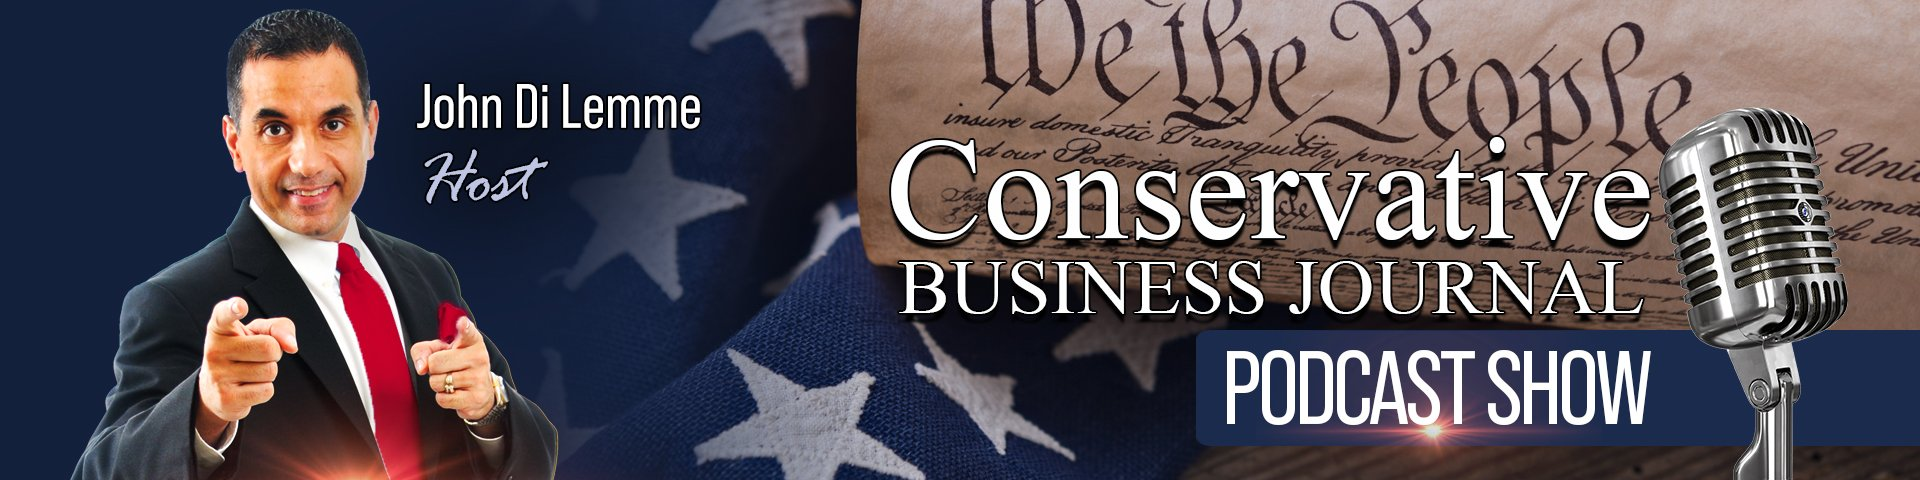 Conservative Business Journal Podcast Show - John Di Lemme